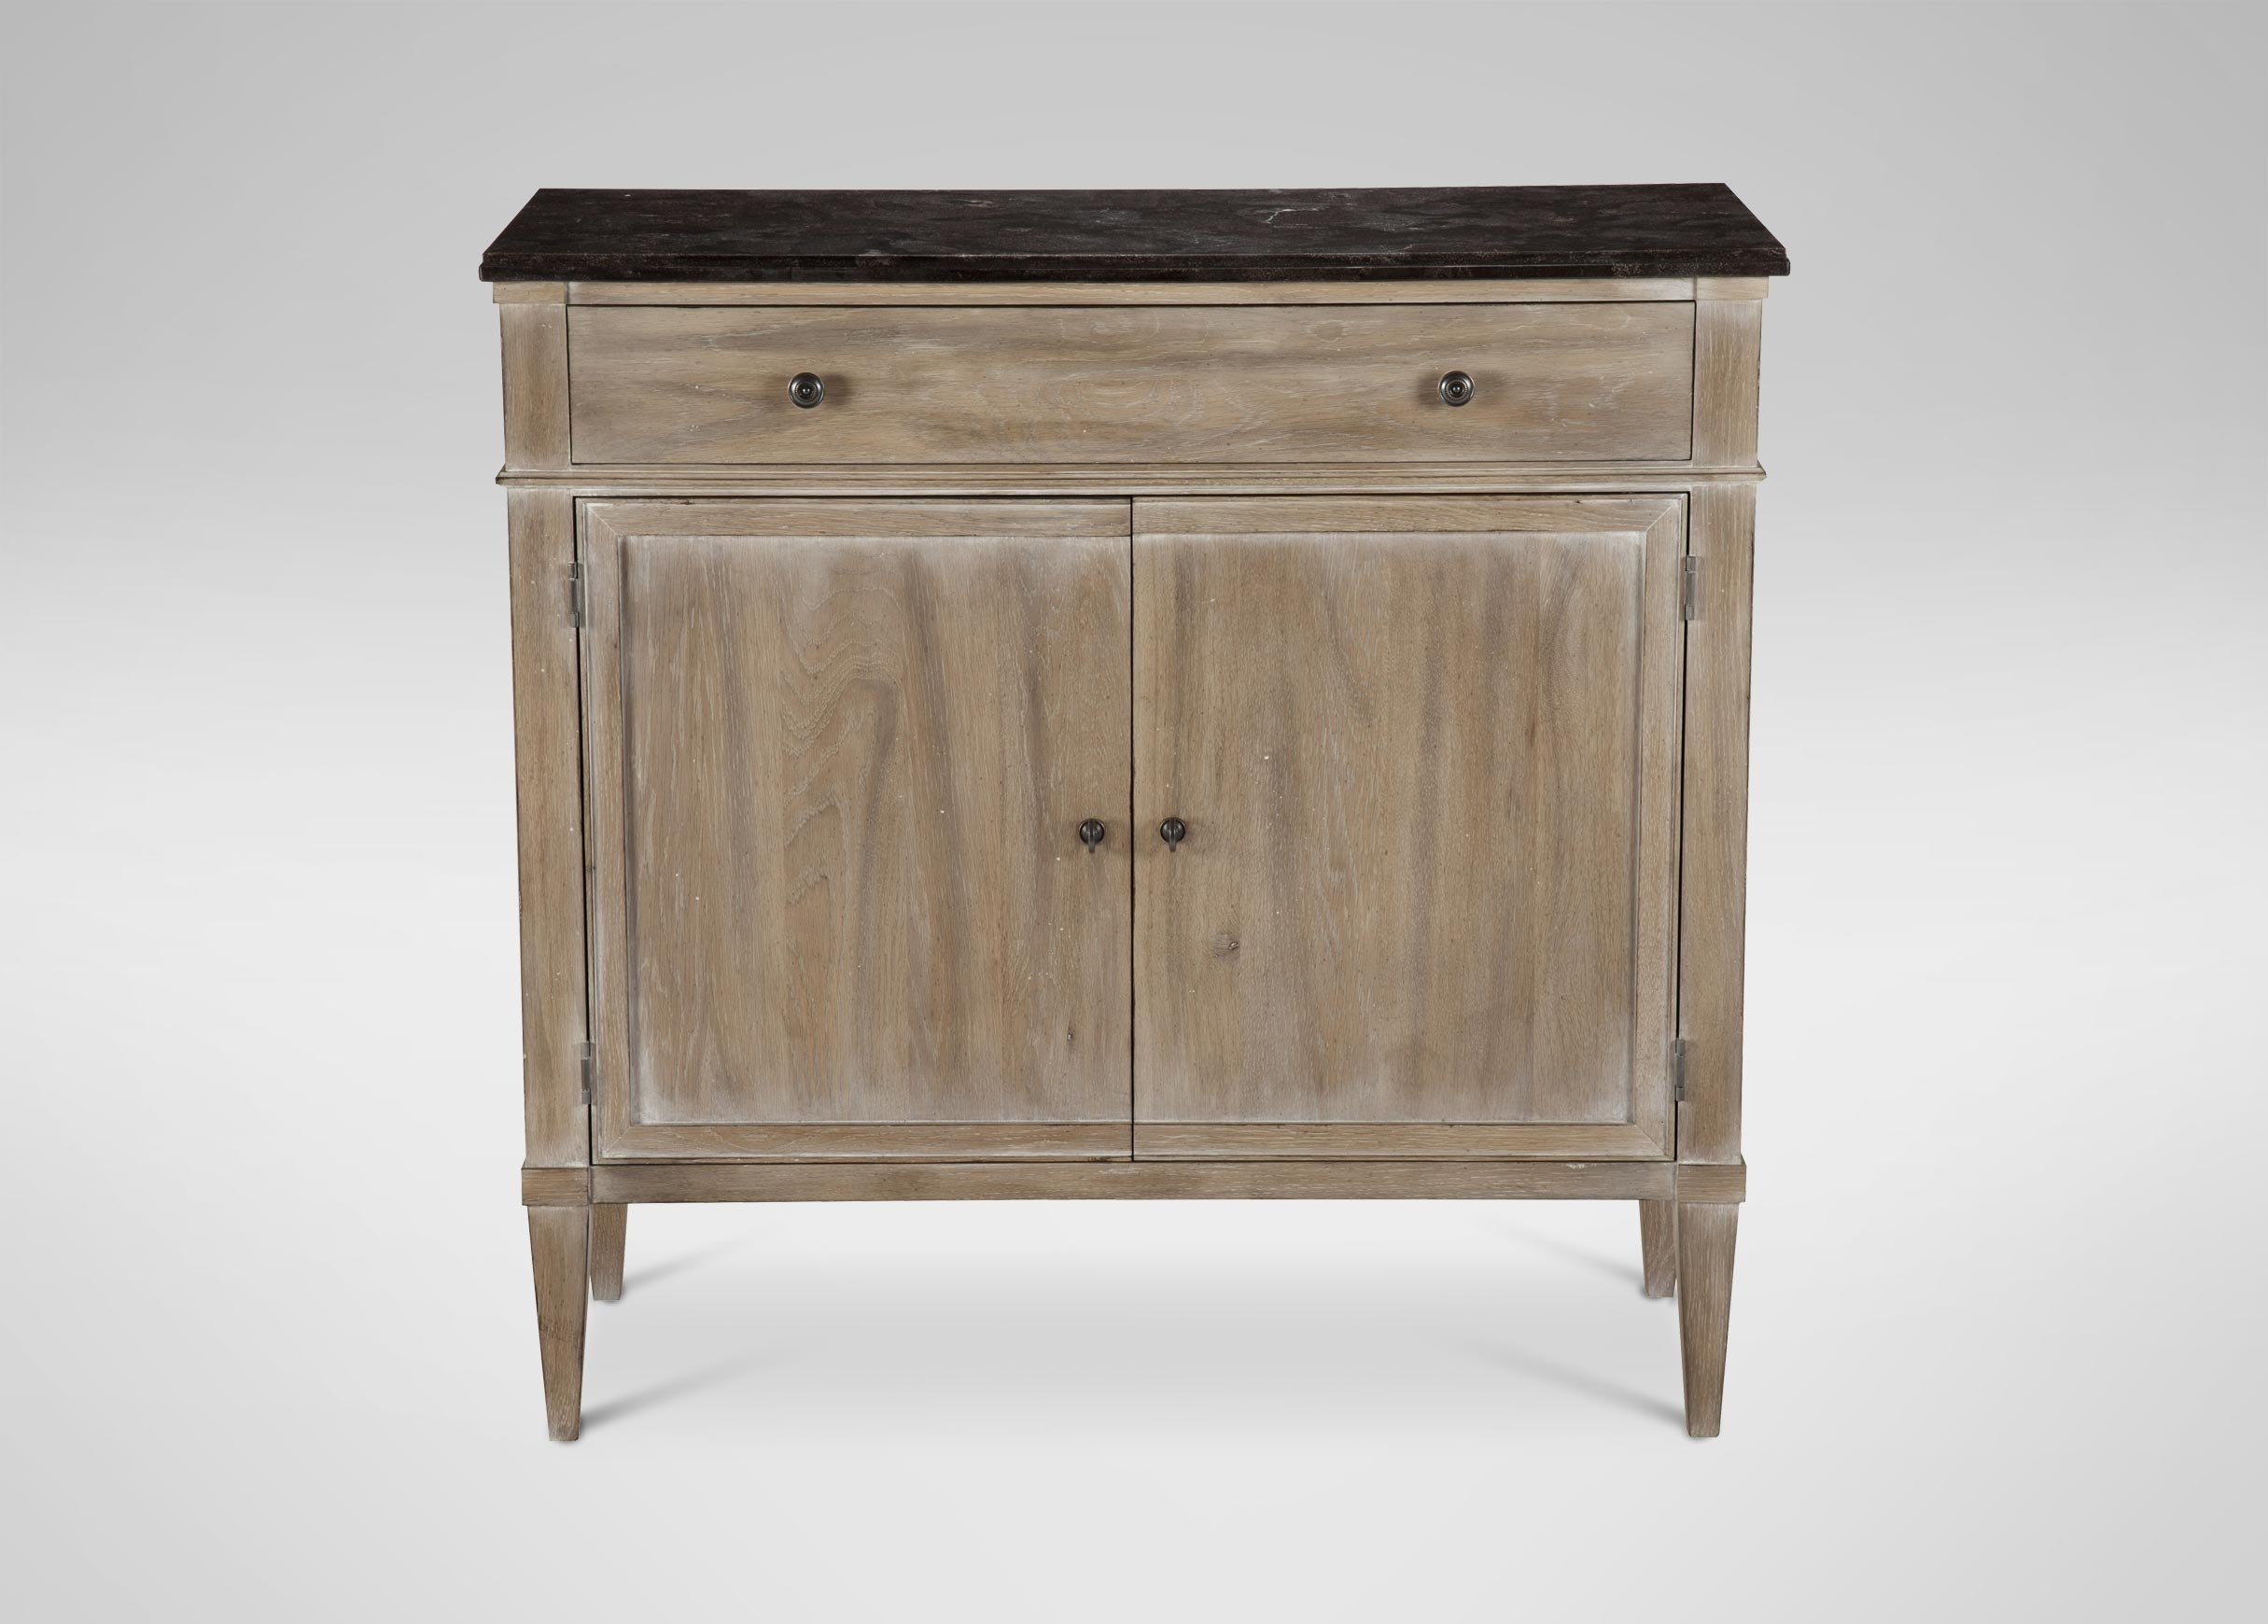 Shop Buffet Storage, Sideboards & Servers | Ethan Allen | Ethan Allen In Most Current Brown Wood 72 Inch Sideboards (#17 of 20)